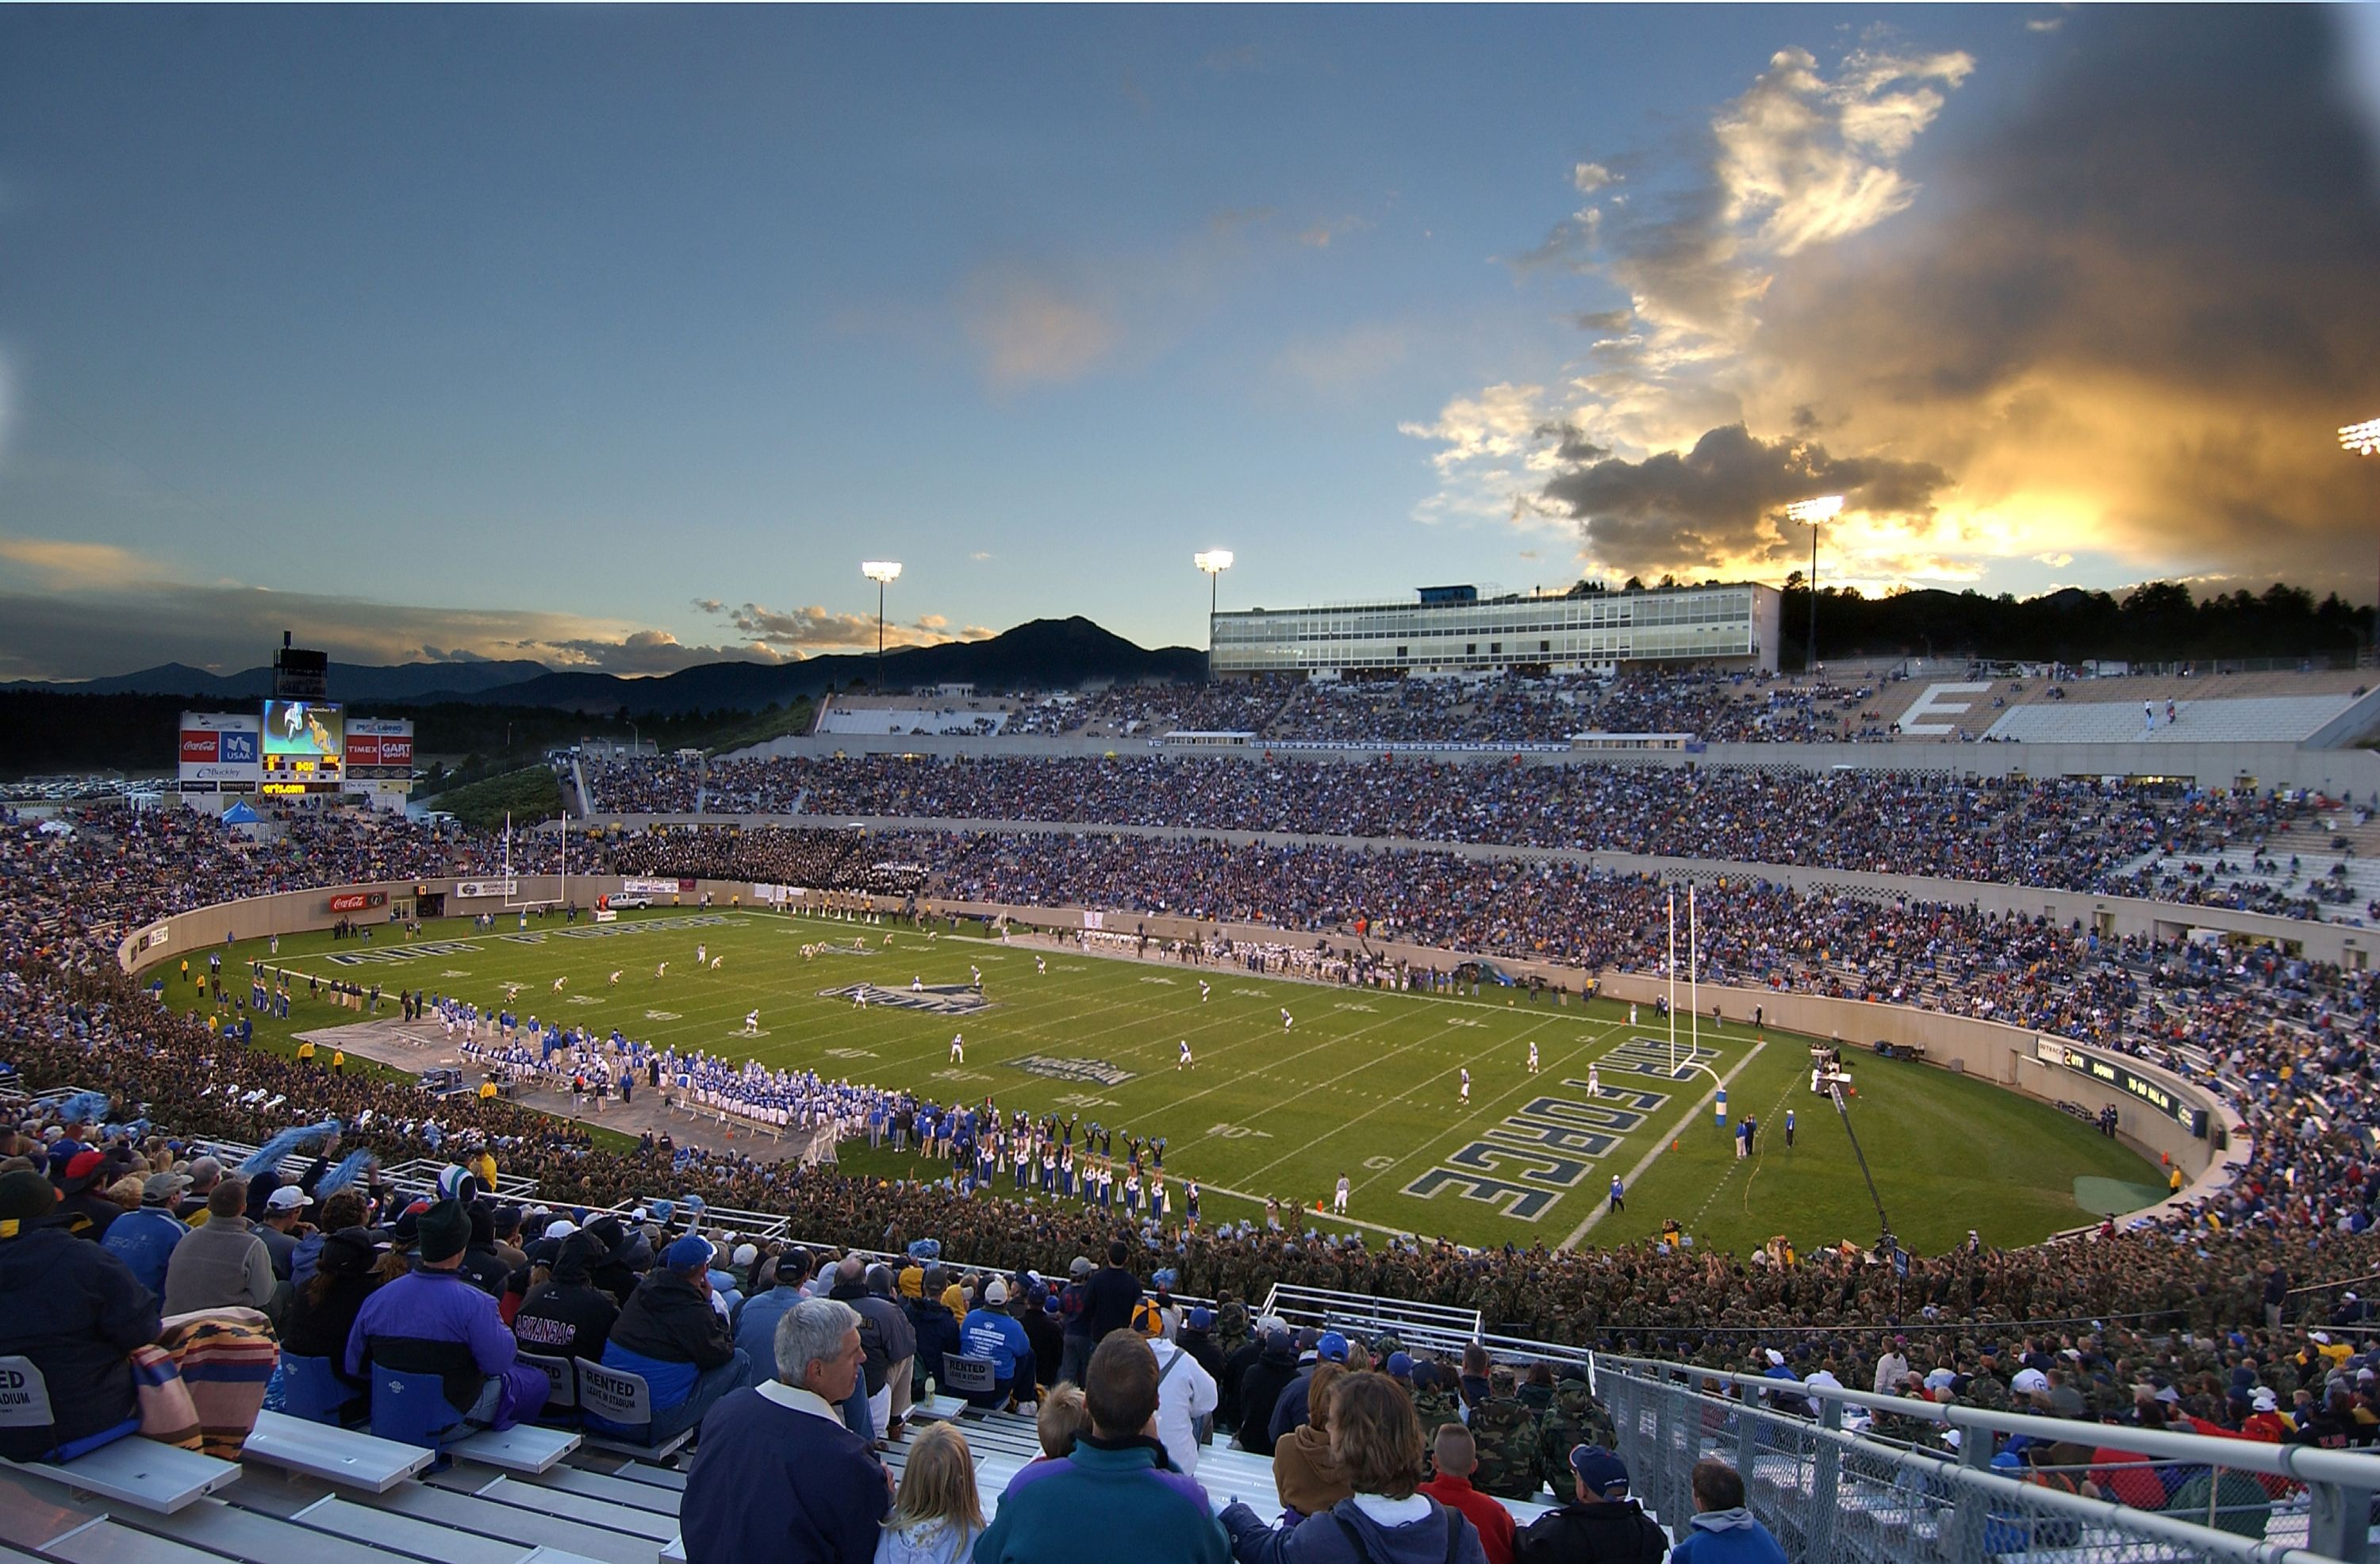 Falcon Stadium is home to the US Air Force Academy's